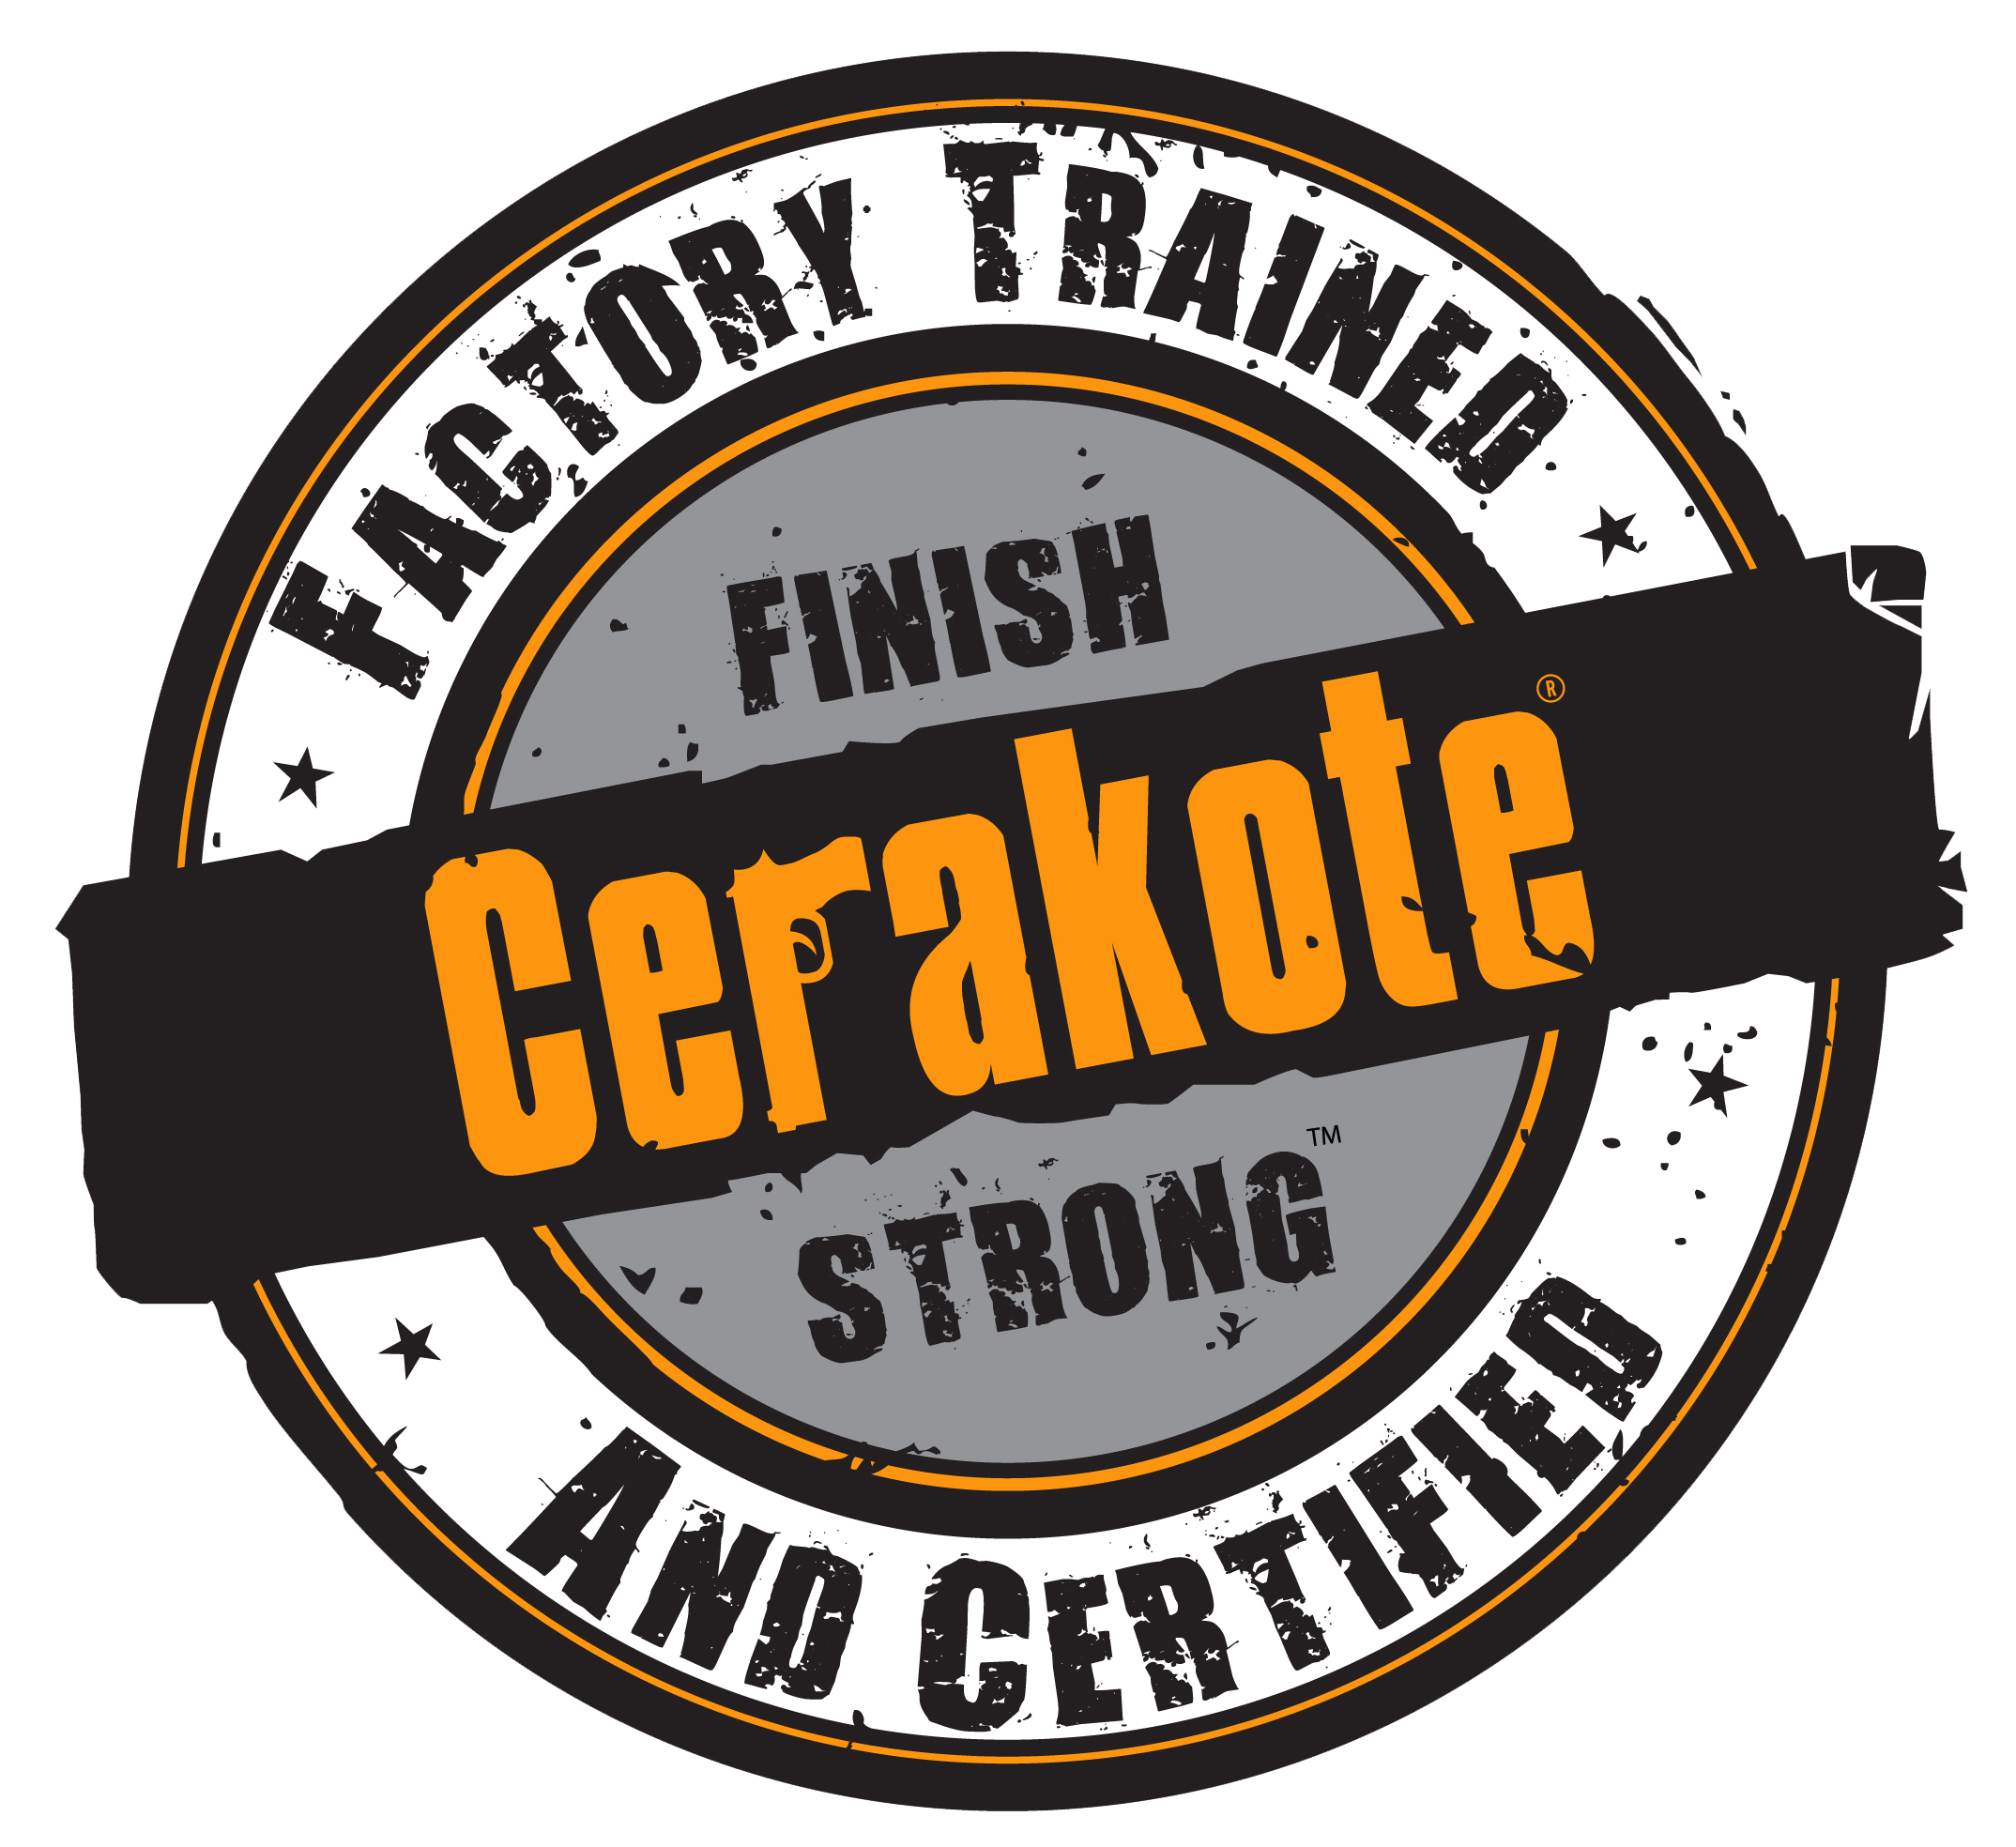 KodiakKoating is Cerakote Certified